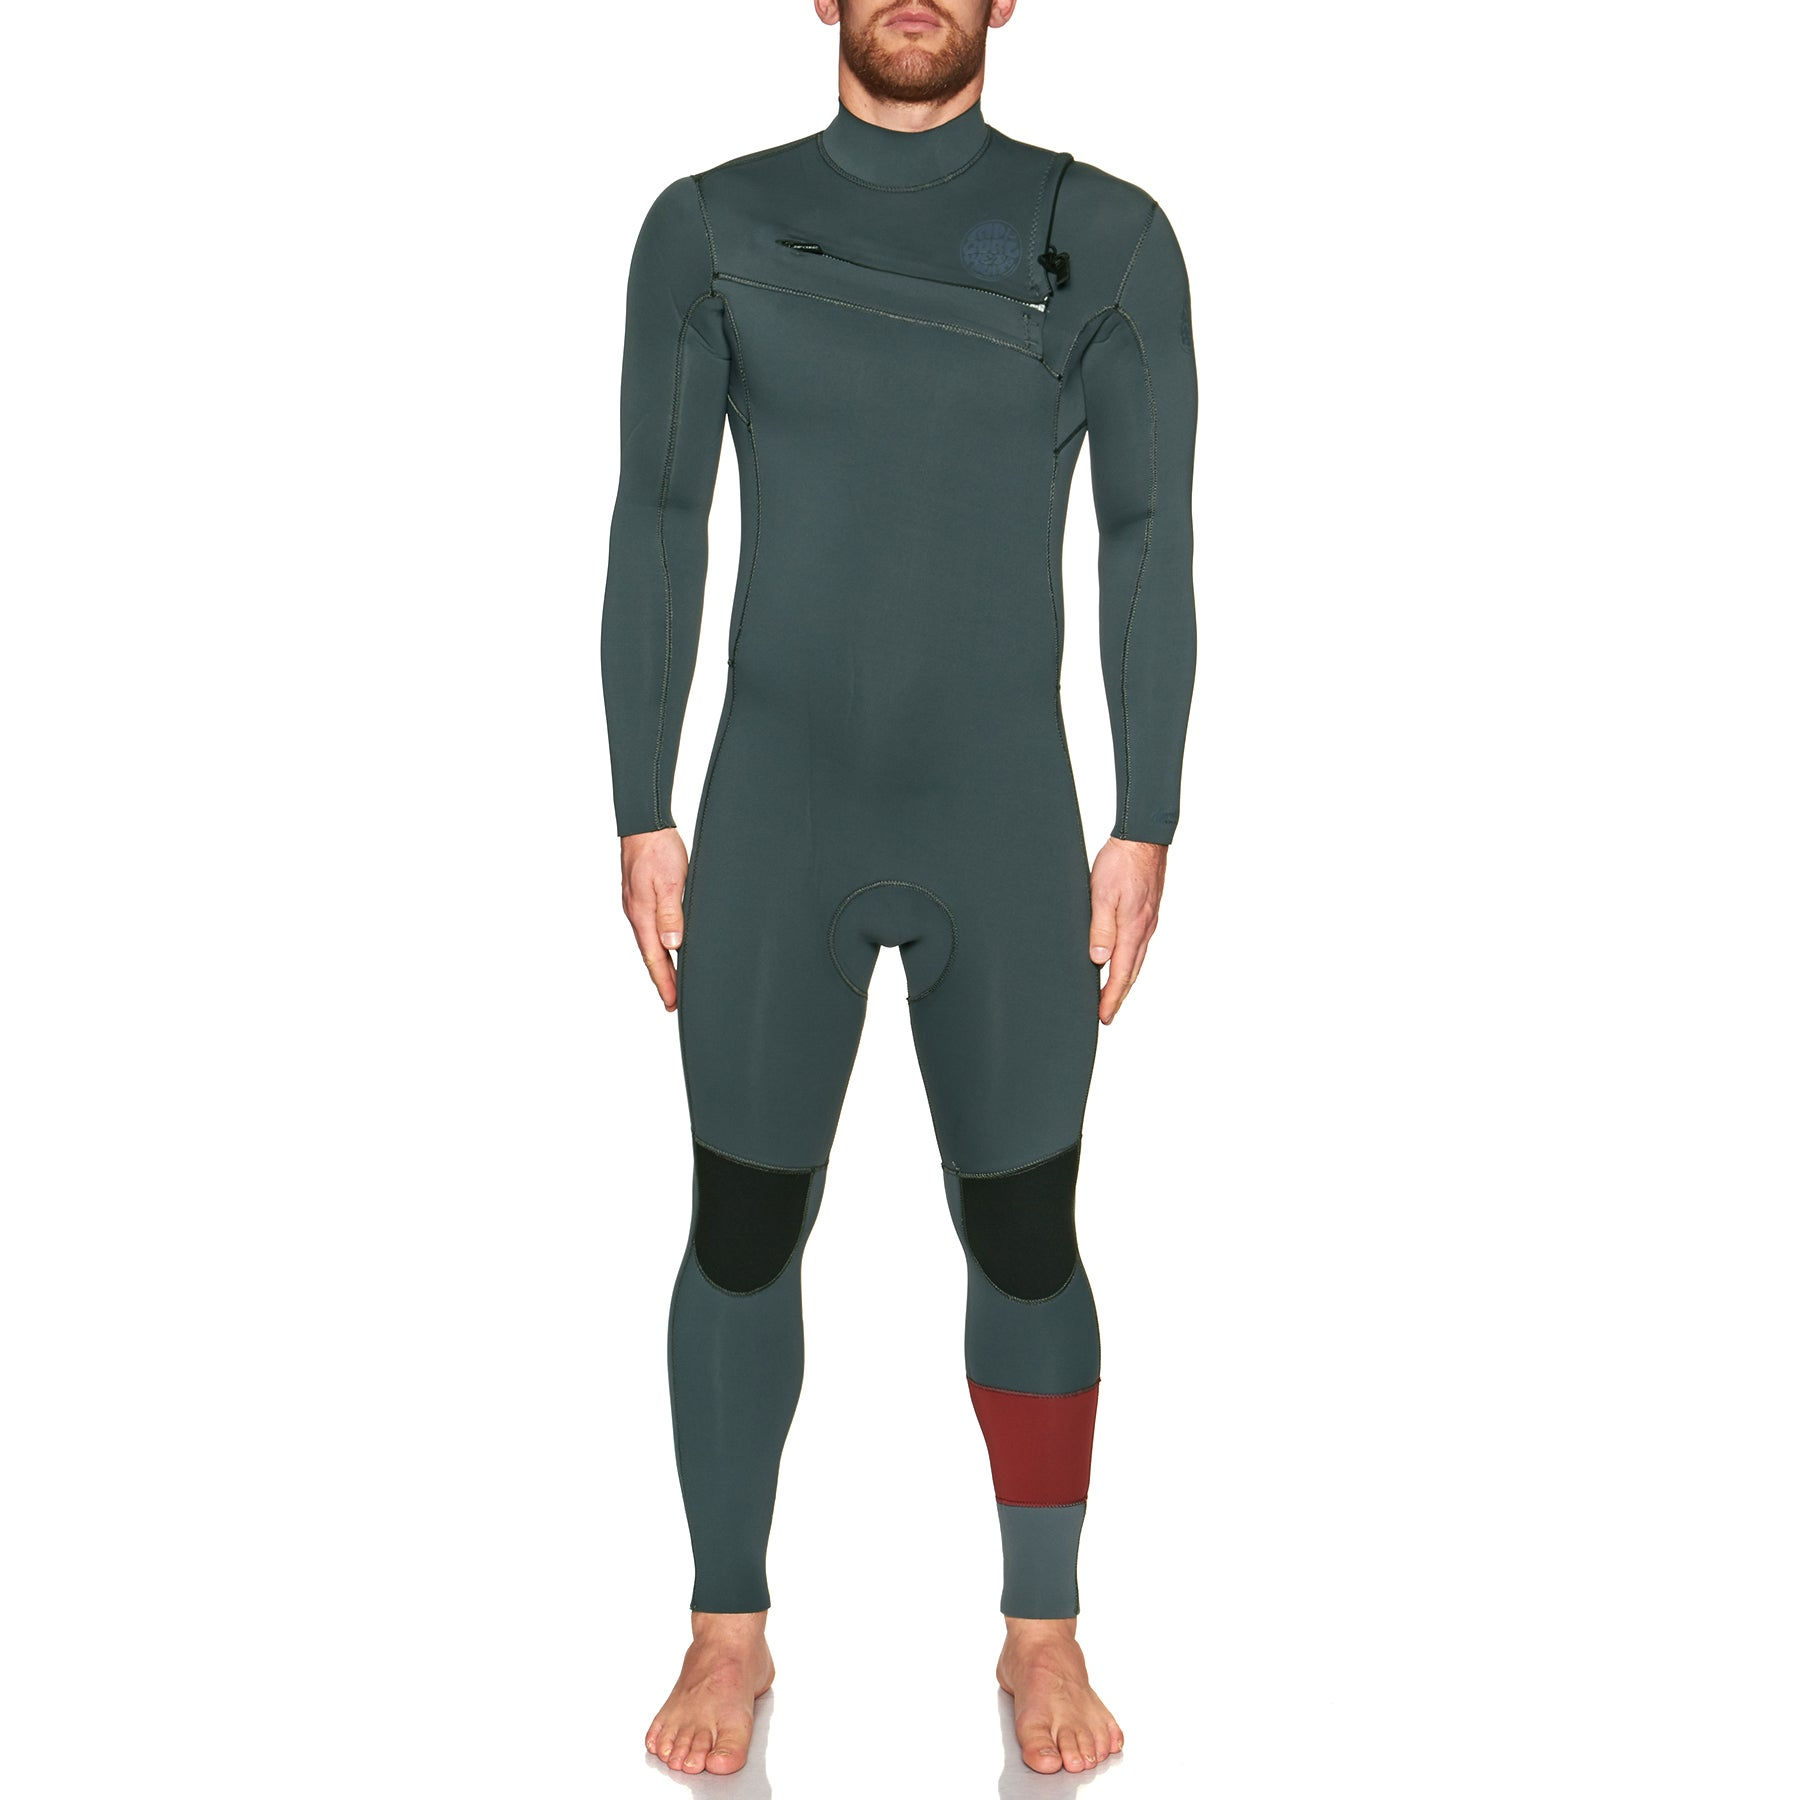 Rip Curl Aggro 4/3mm 2018 Chest Zip Wetsuit - Charcoal